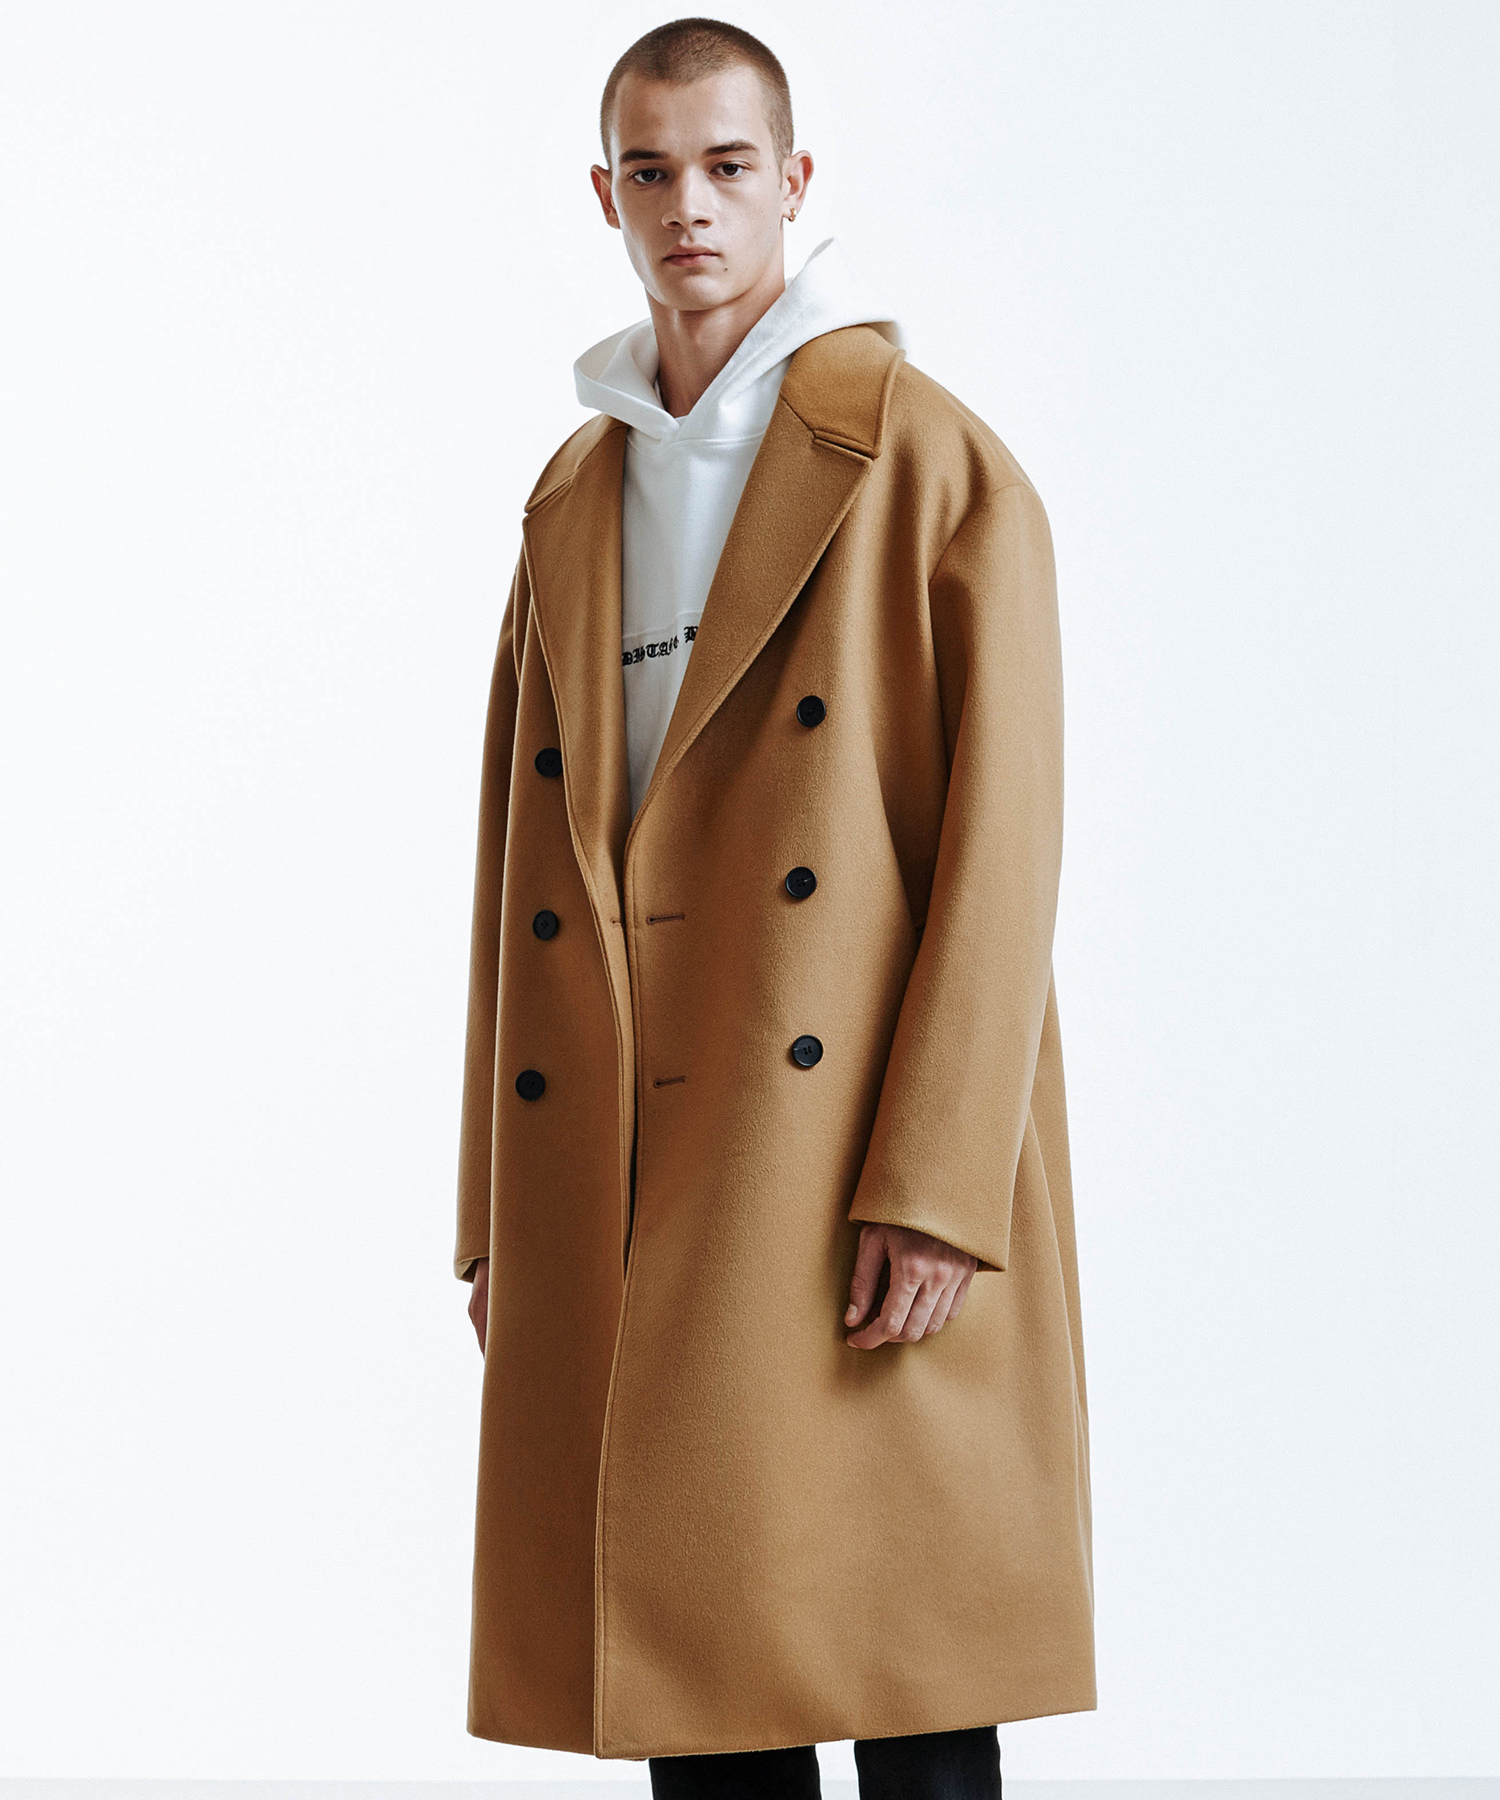 IN SILENCE X BUND EXPLORER COAT (CAMEL)